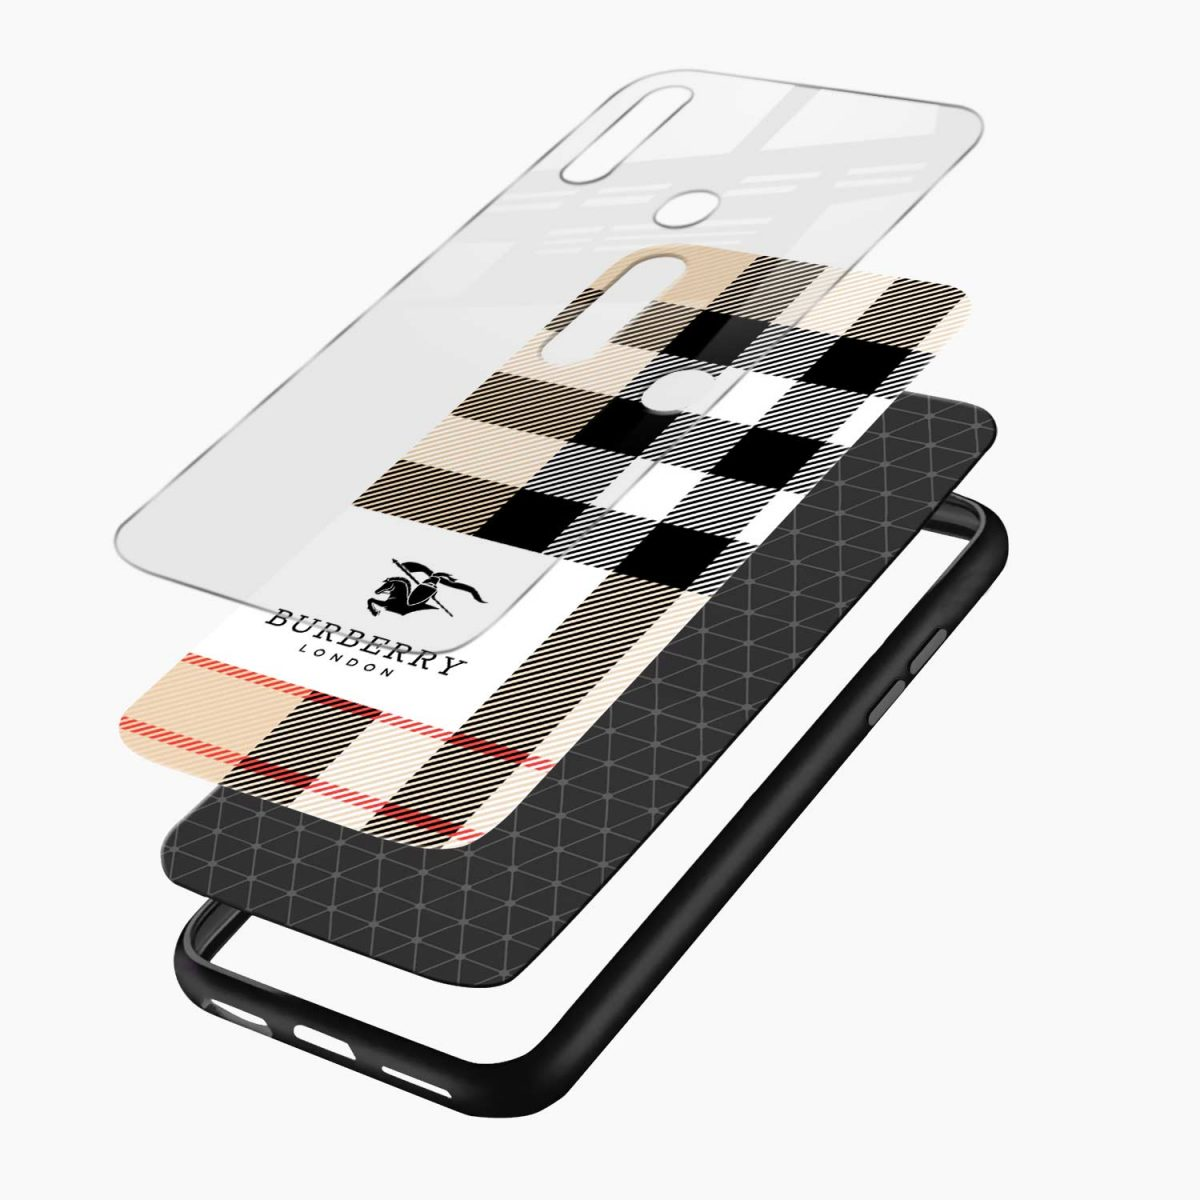 burberry cross lines pattern layers view oppo a31 back cover